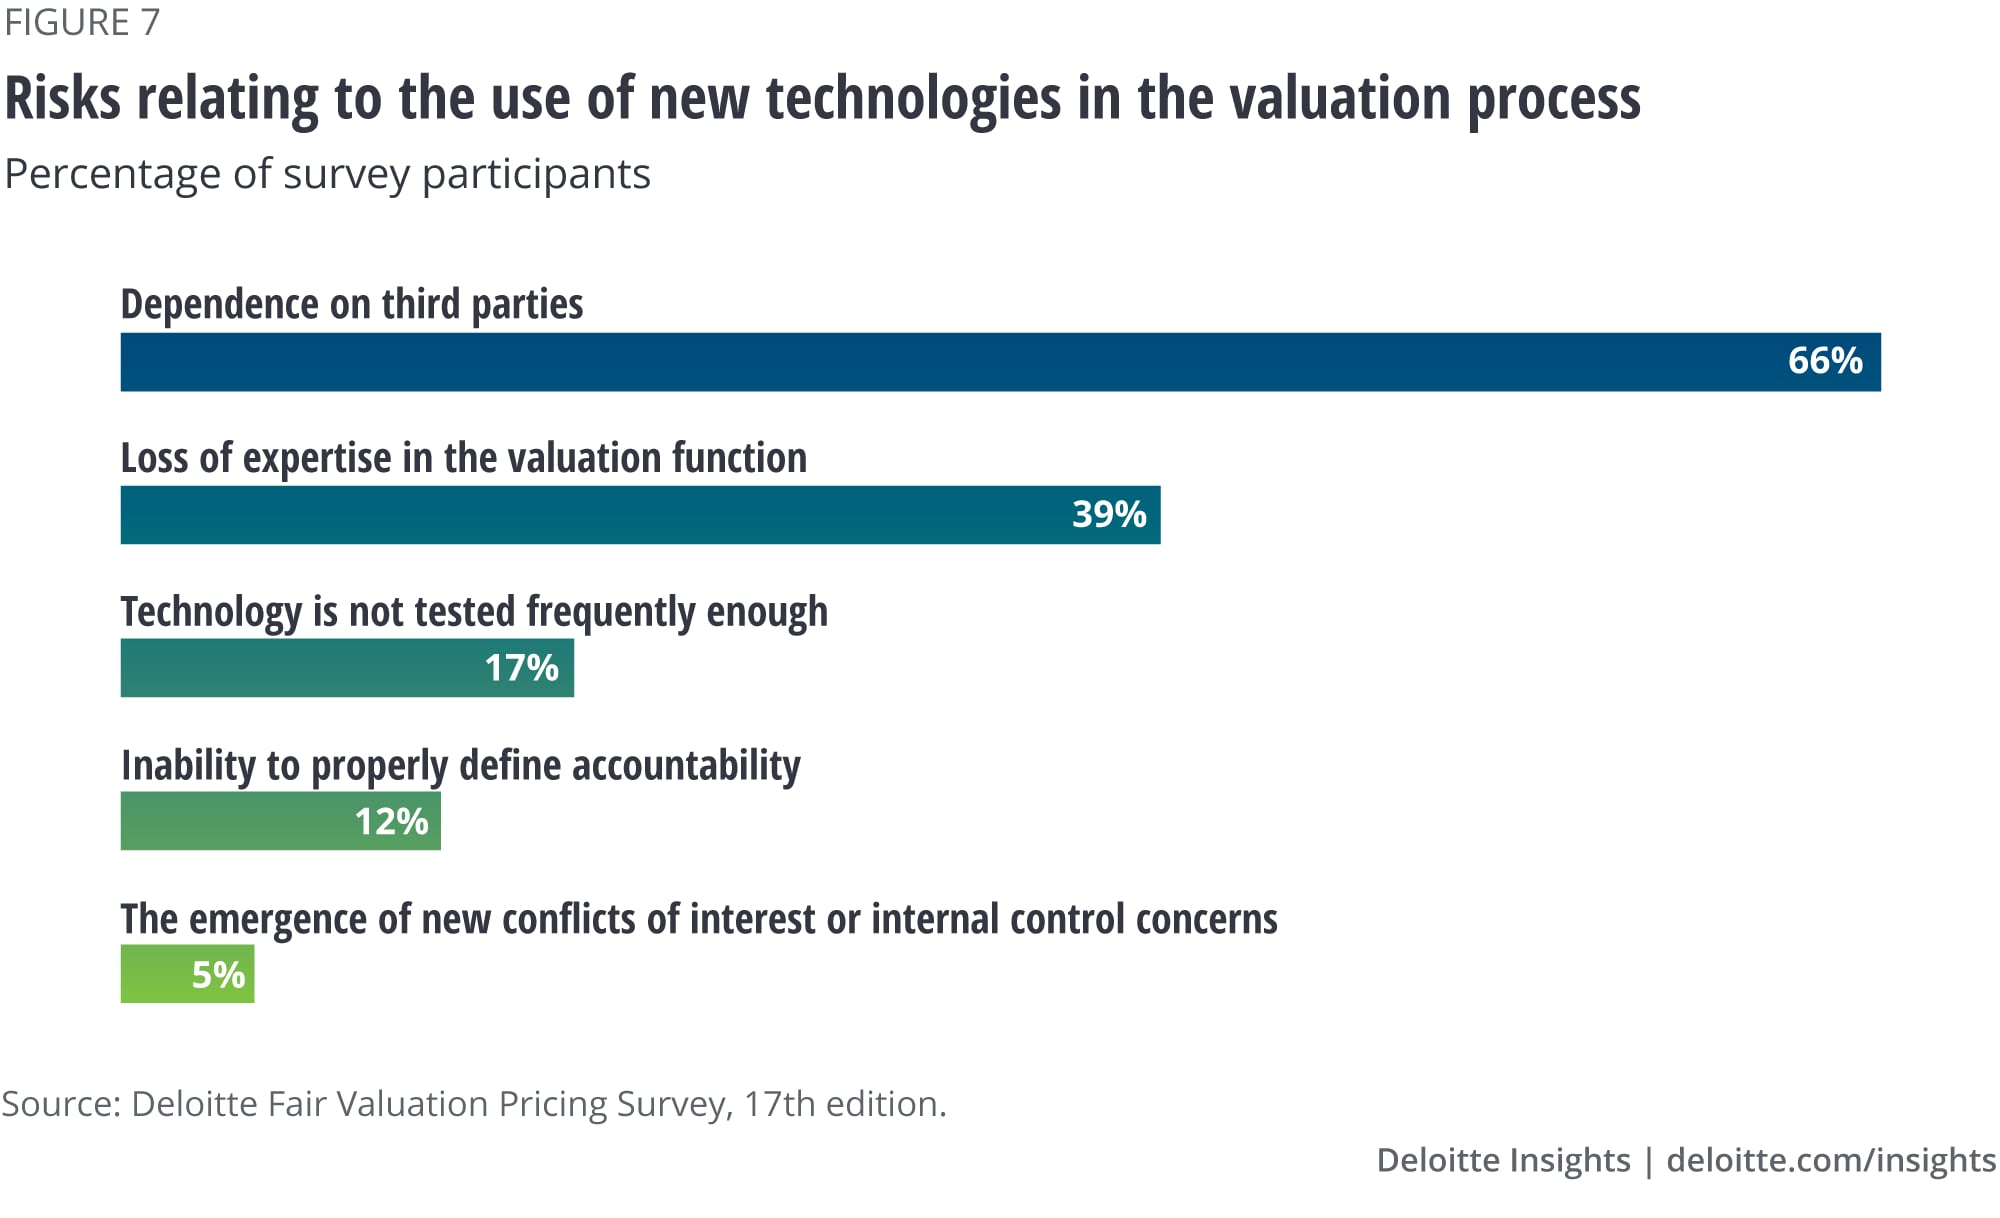 Risks relating to the use of new technologies in the pricing process